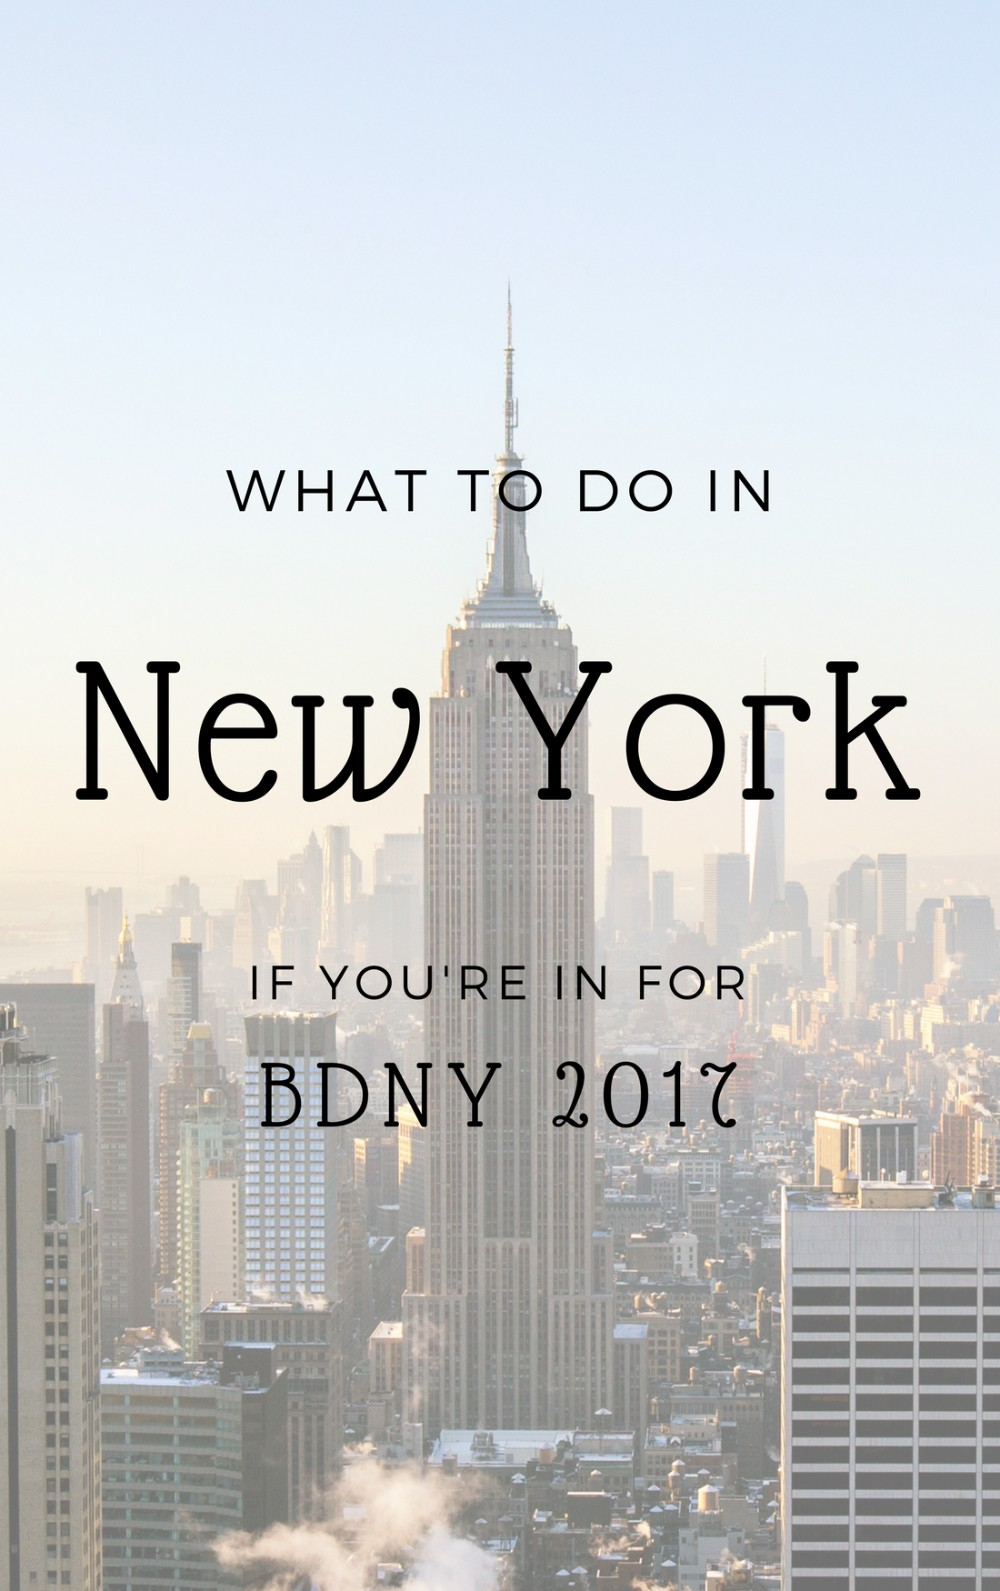 In New York for BDNY 2017? Here's What You MUST Do